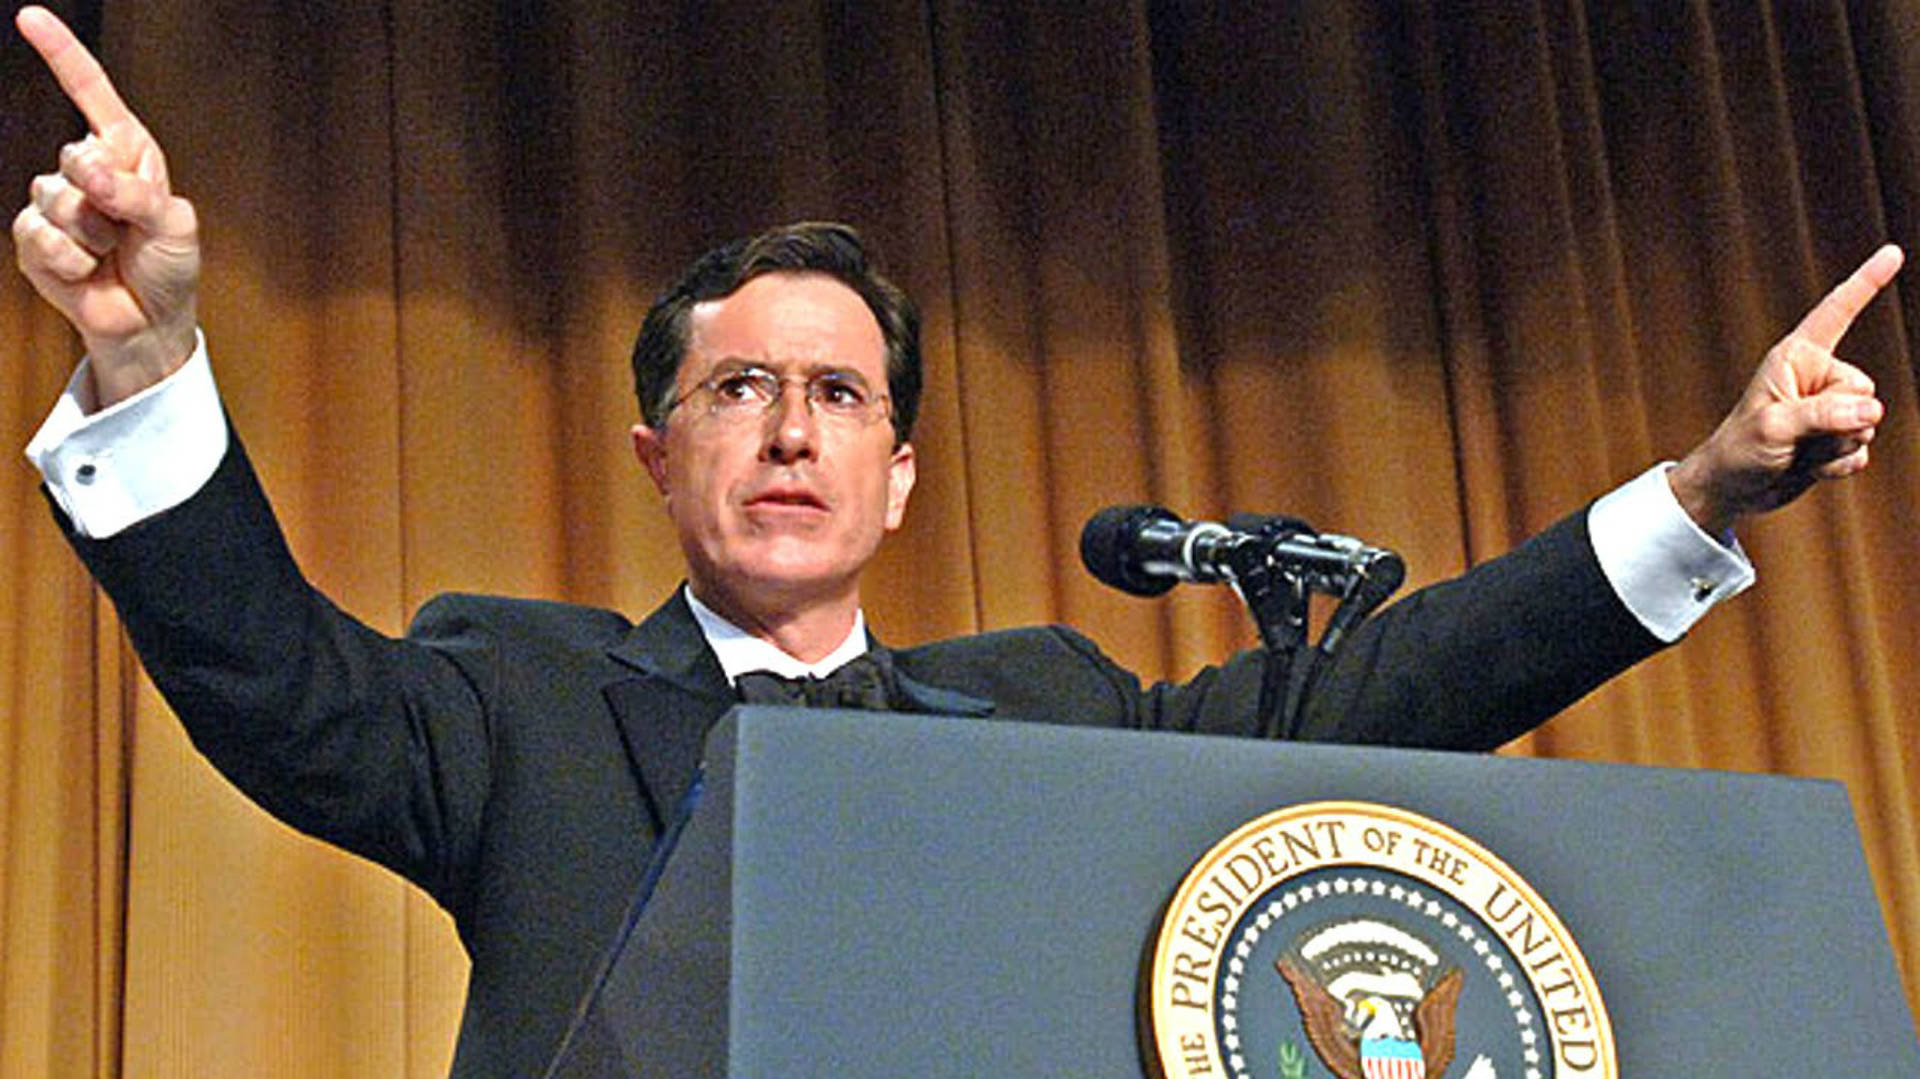 stephen colbert's blistering performance mocking bush and the